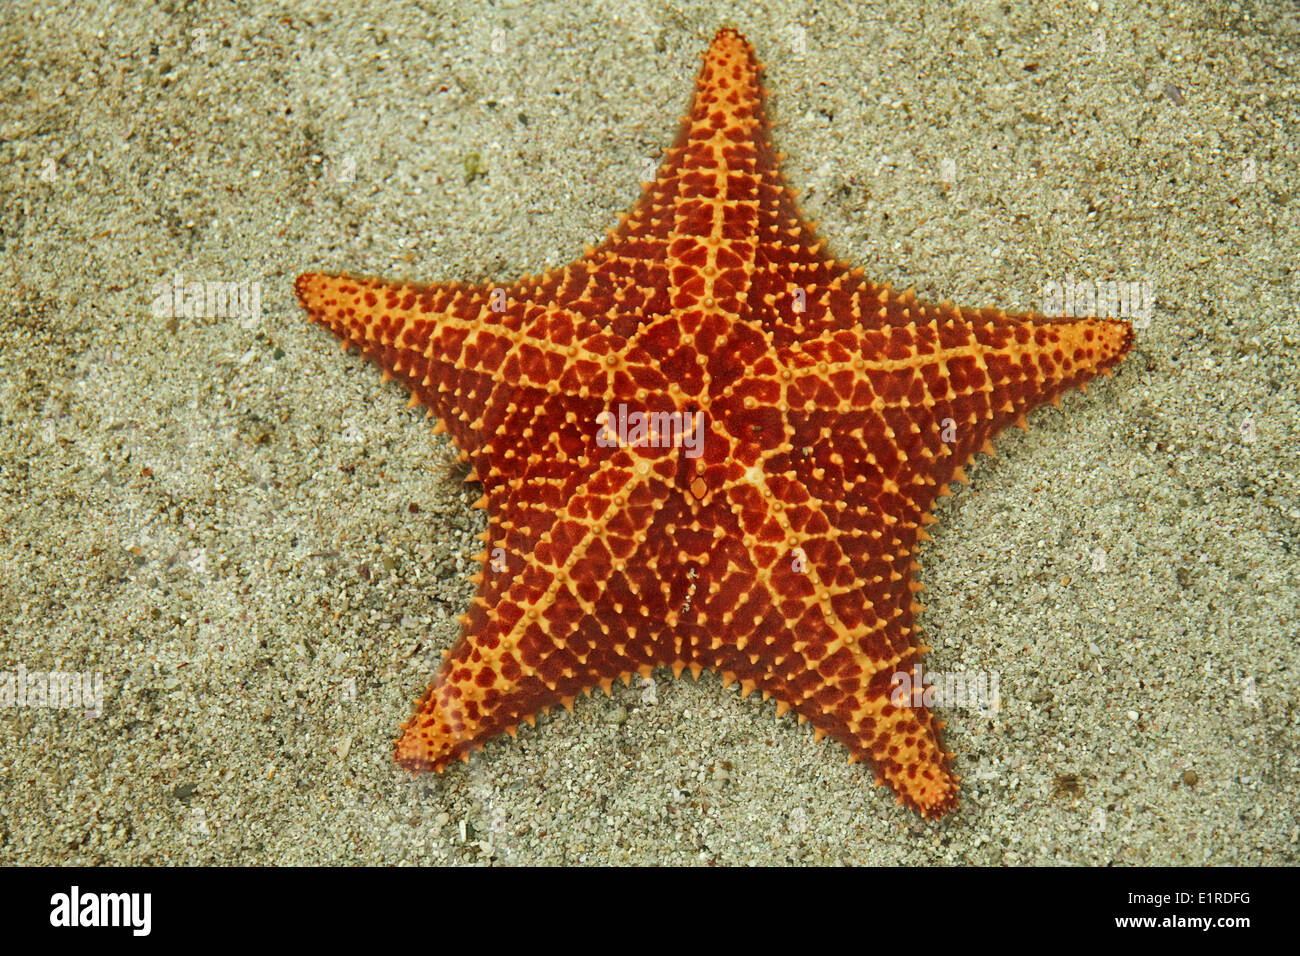 dorsal view of a red cushion sea star - Stock Image